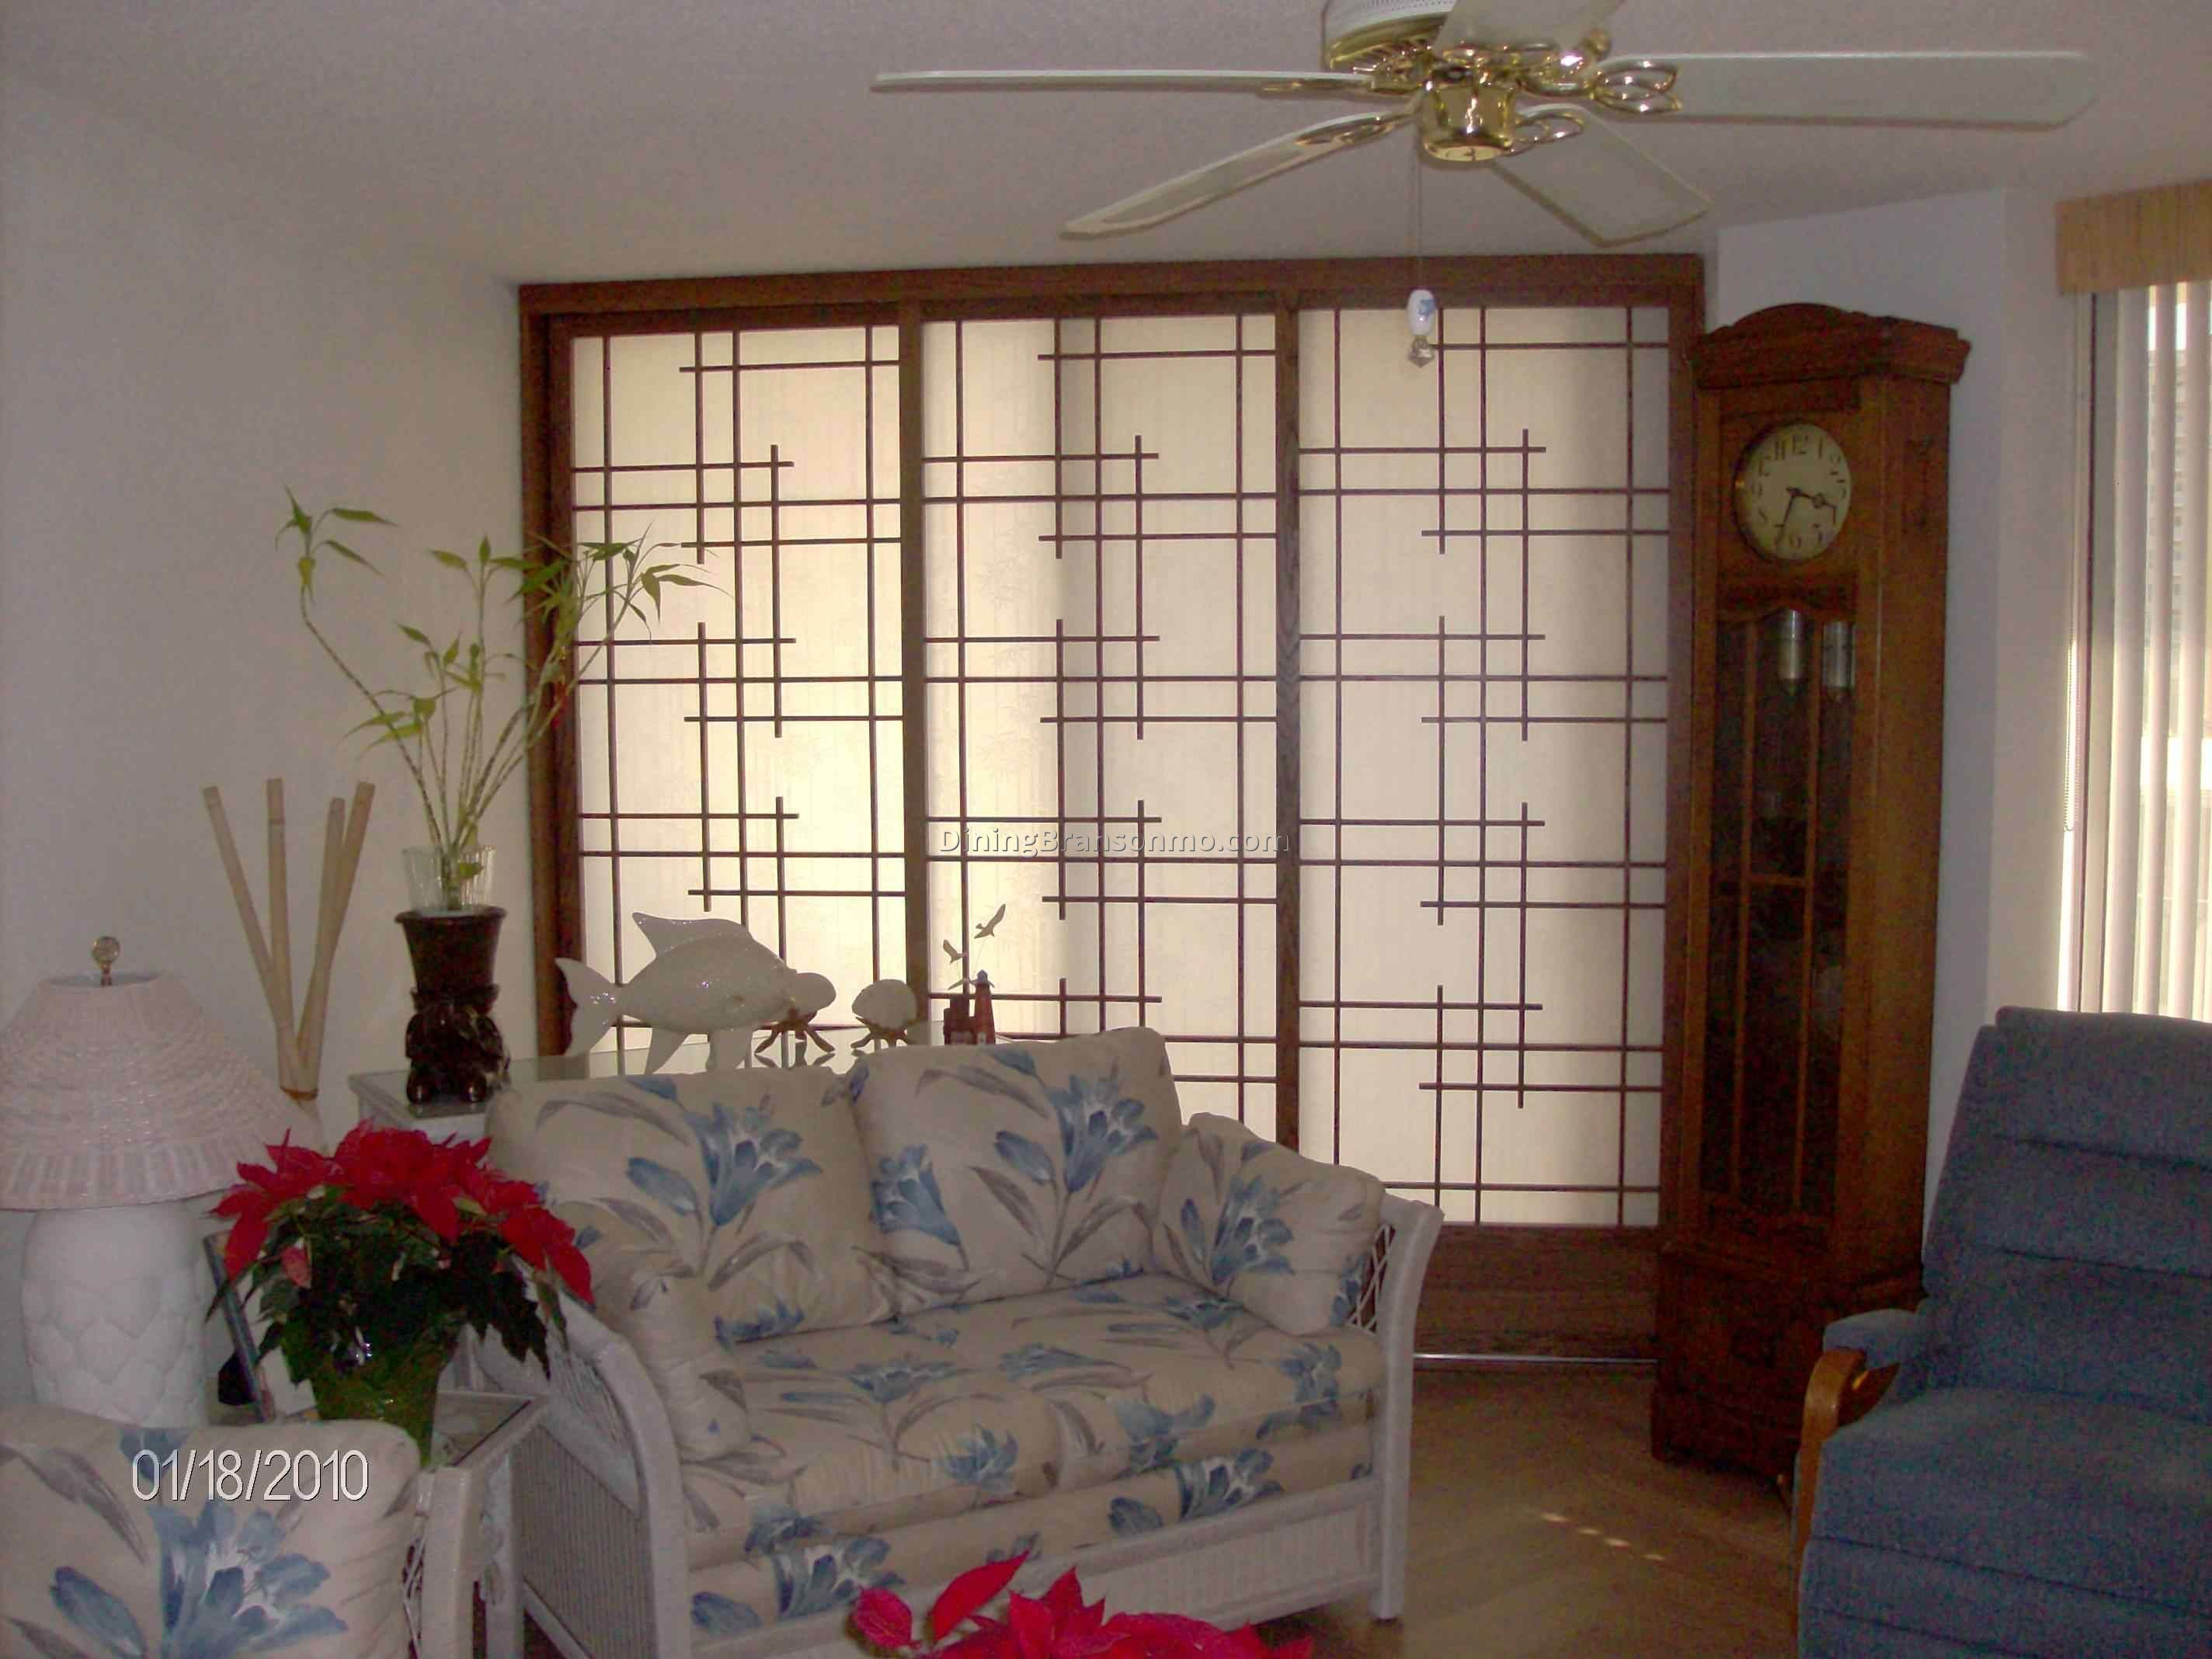 Curtains To Separate Kitchen From Dining Room 5 Minimalist Living Room Minimalist Living Room Design Room Divider Doors